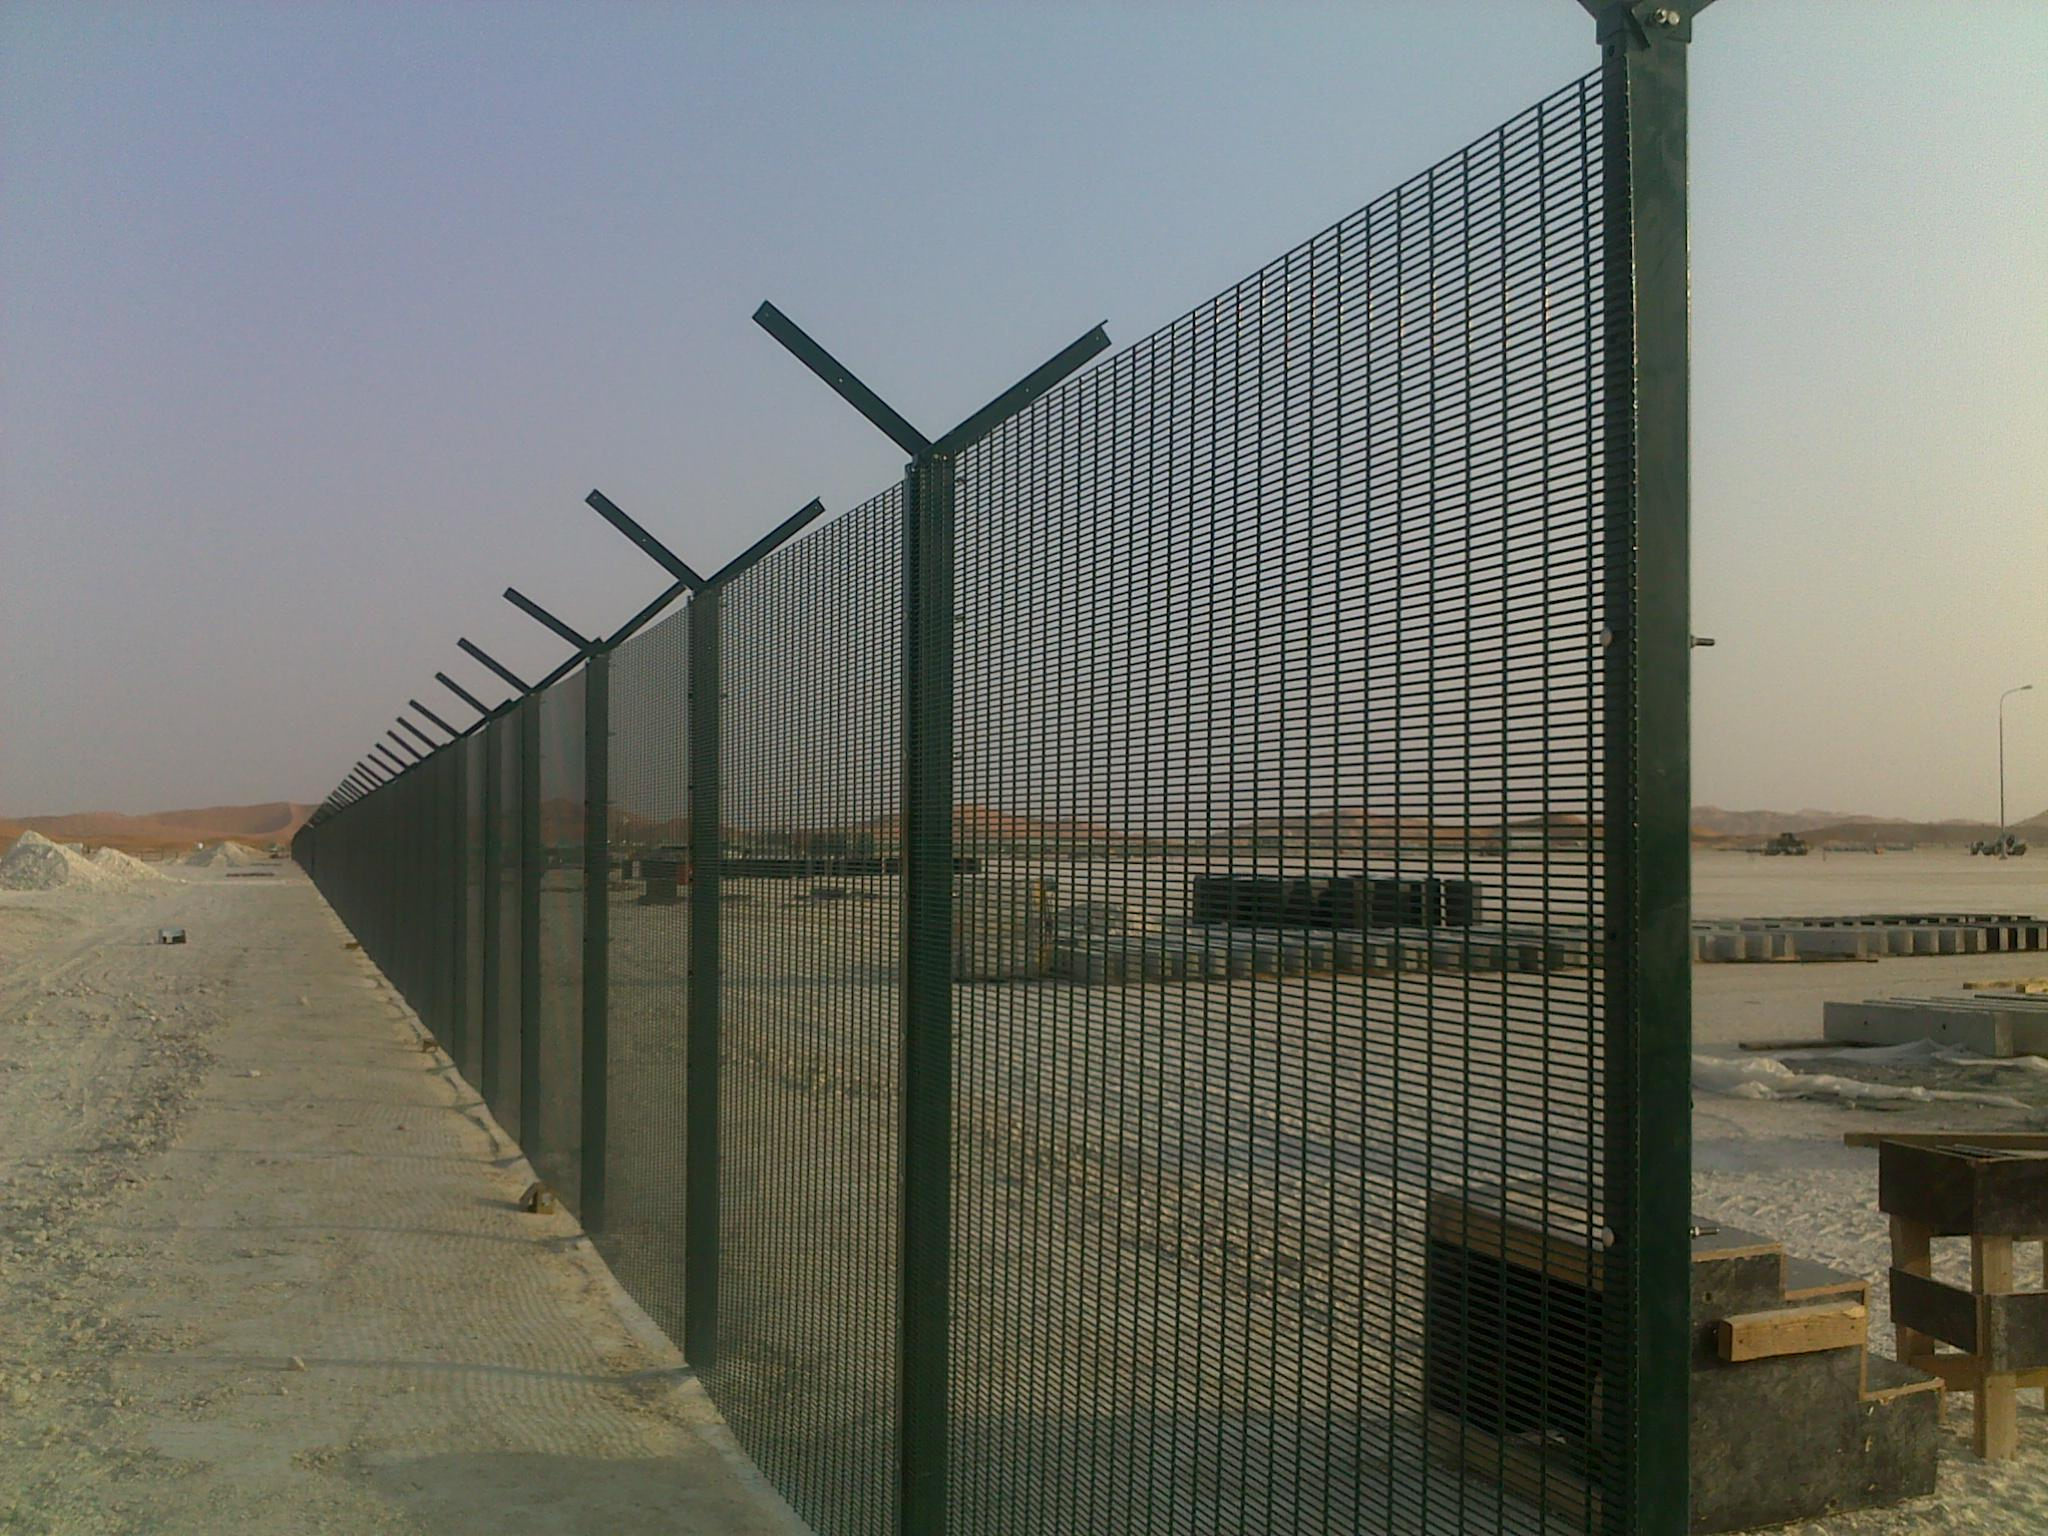 China Black Coated High Security Fencing Manufacturers